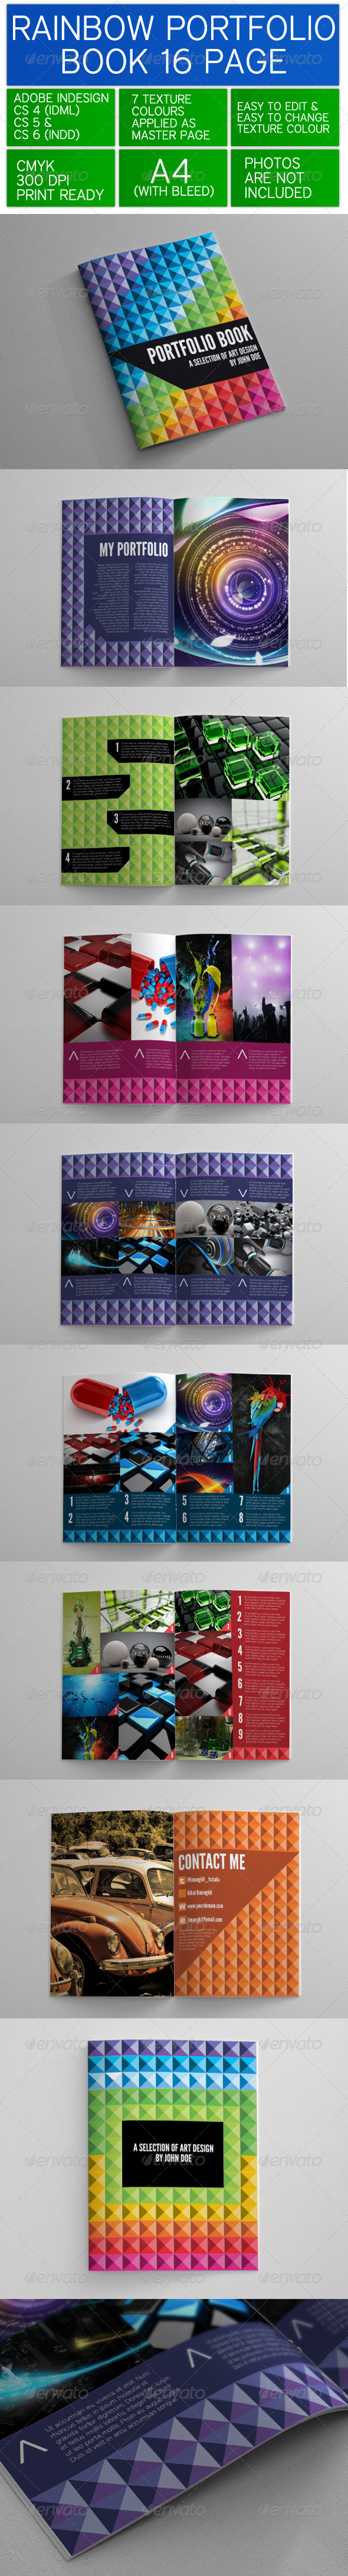 GraphicRiver Rainbow Portfolio Book 3419890